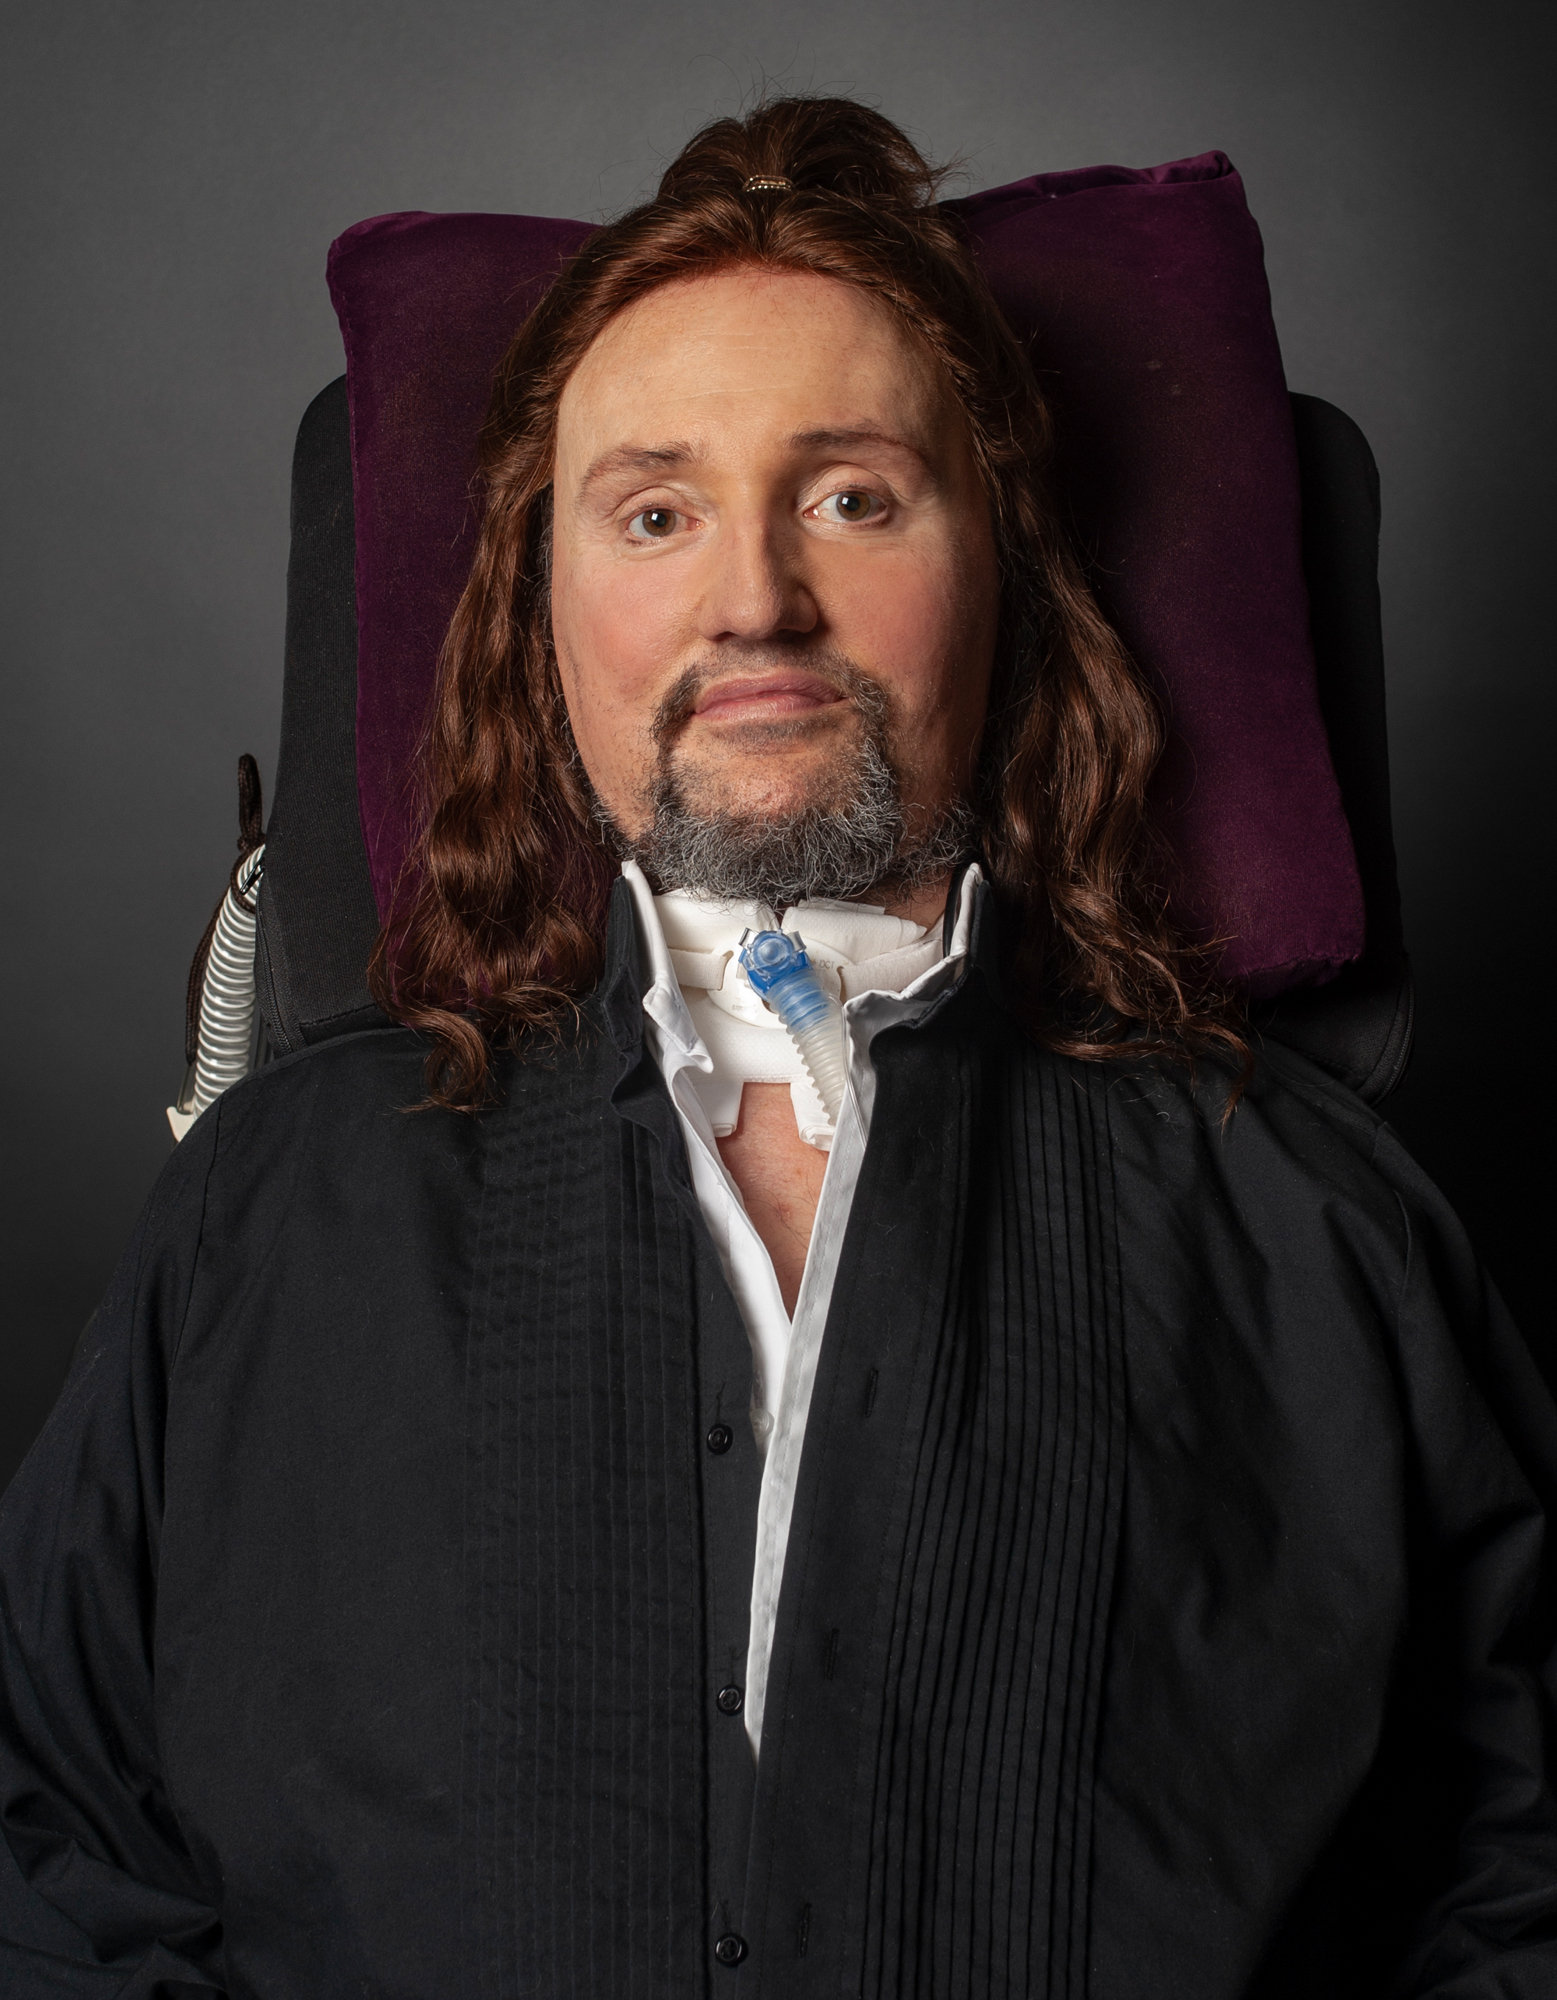 Jason Becker Announces New Album 'Triumphant Hearts' Out December 7th + Video For New Track 'Valley Of Fire' (ft. The Magnificent 13)